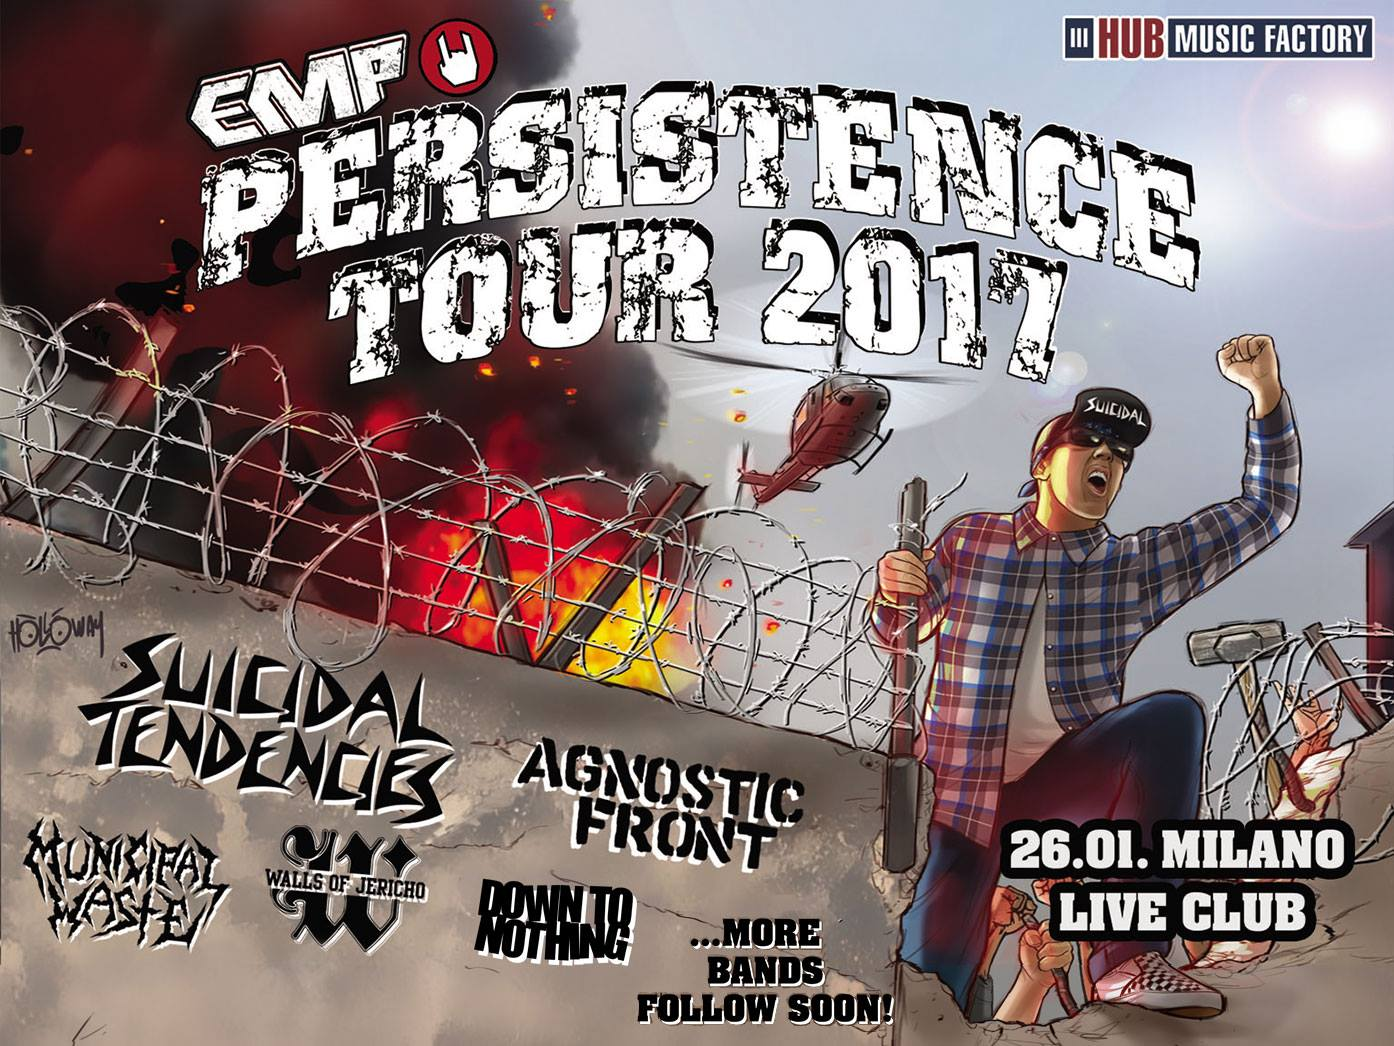 Persistence Tour 2017 Sucidal Tendencies Uptaded 9 Agosto